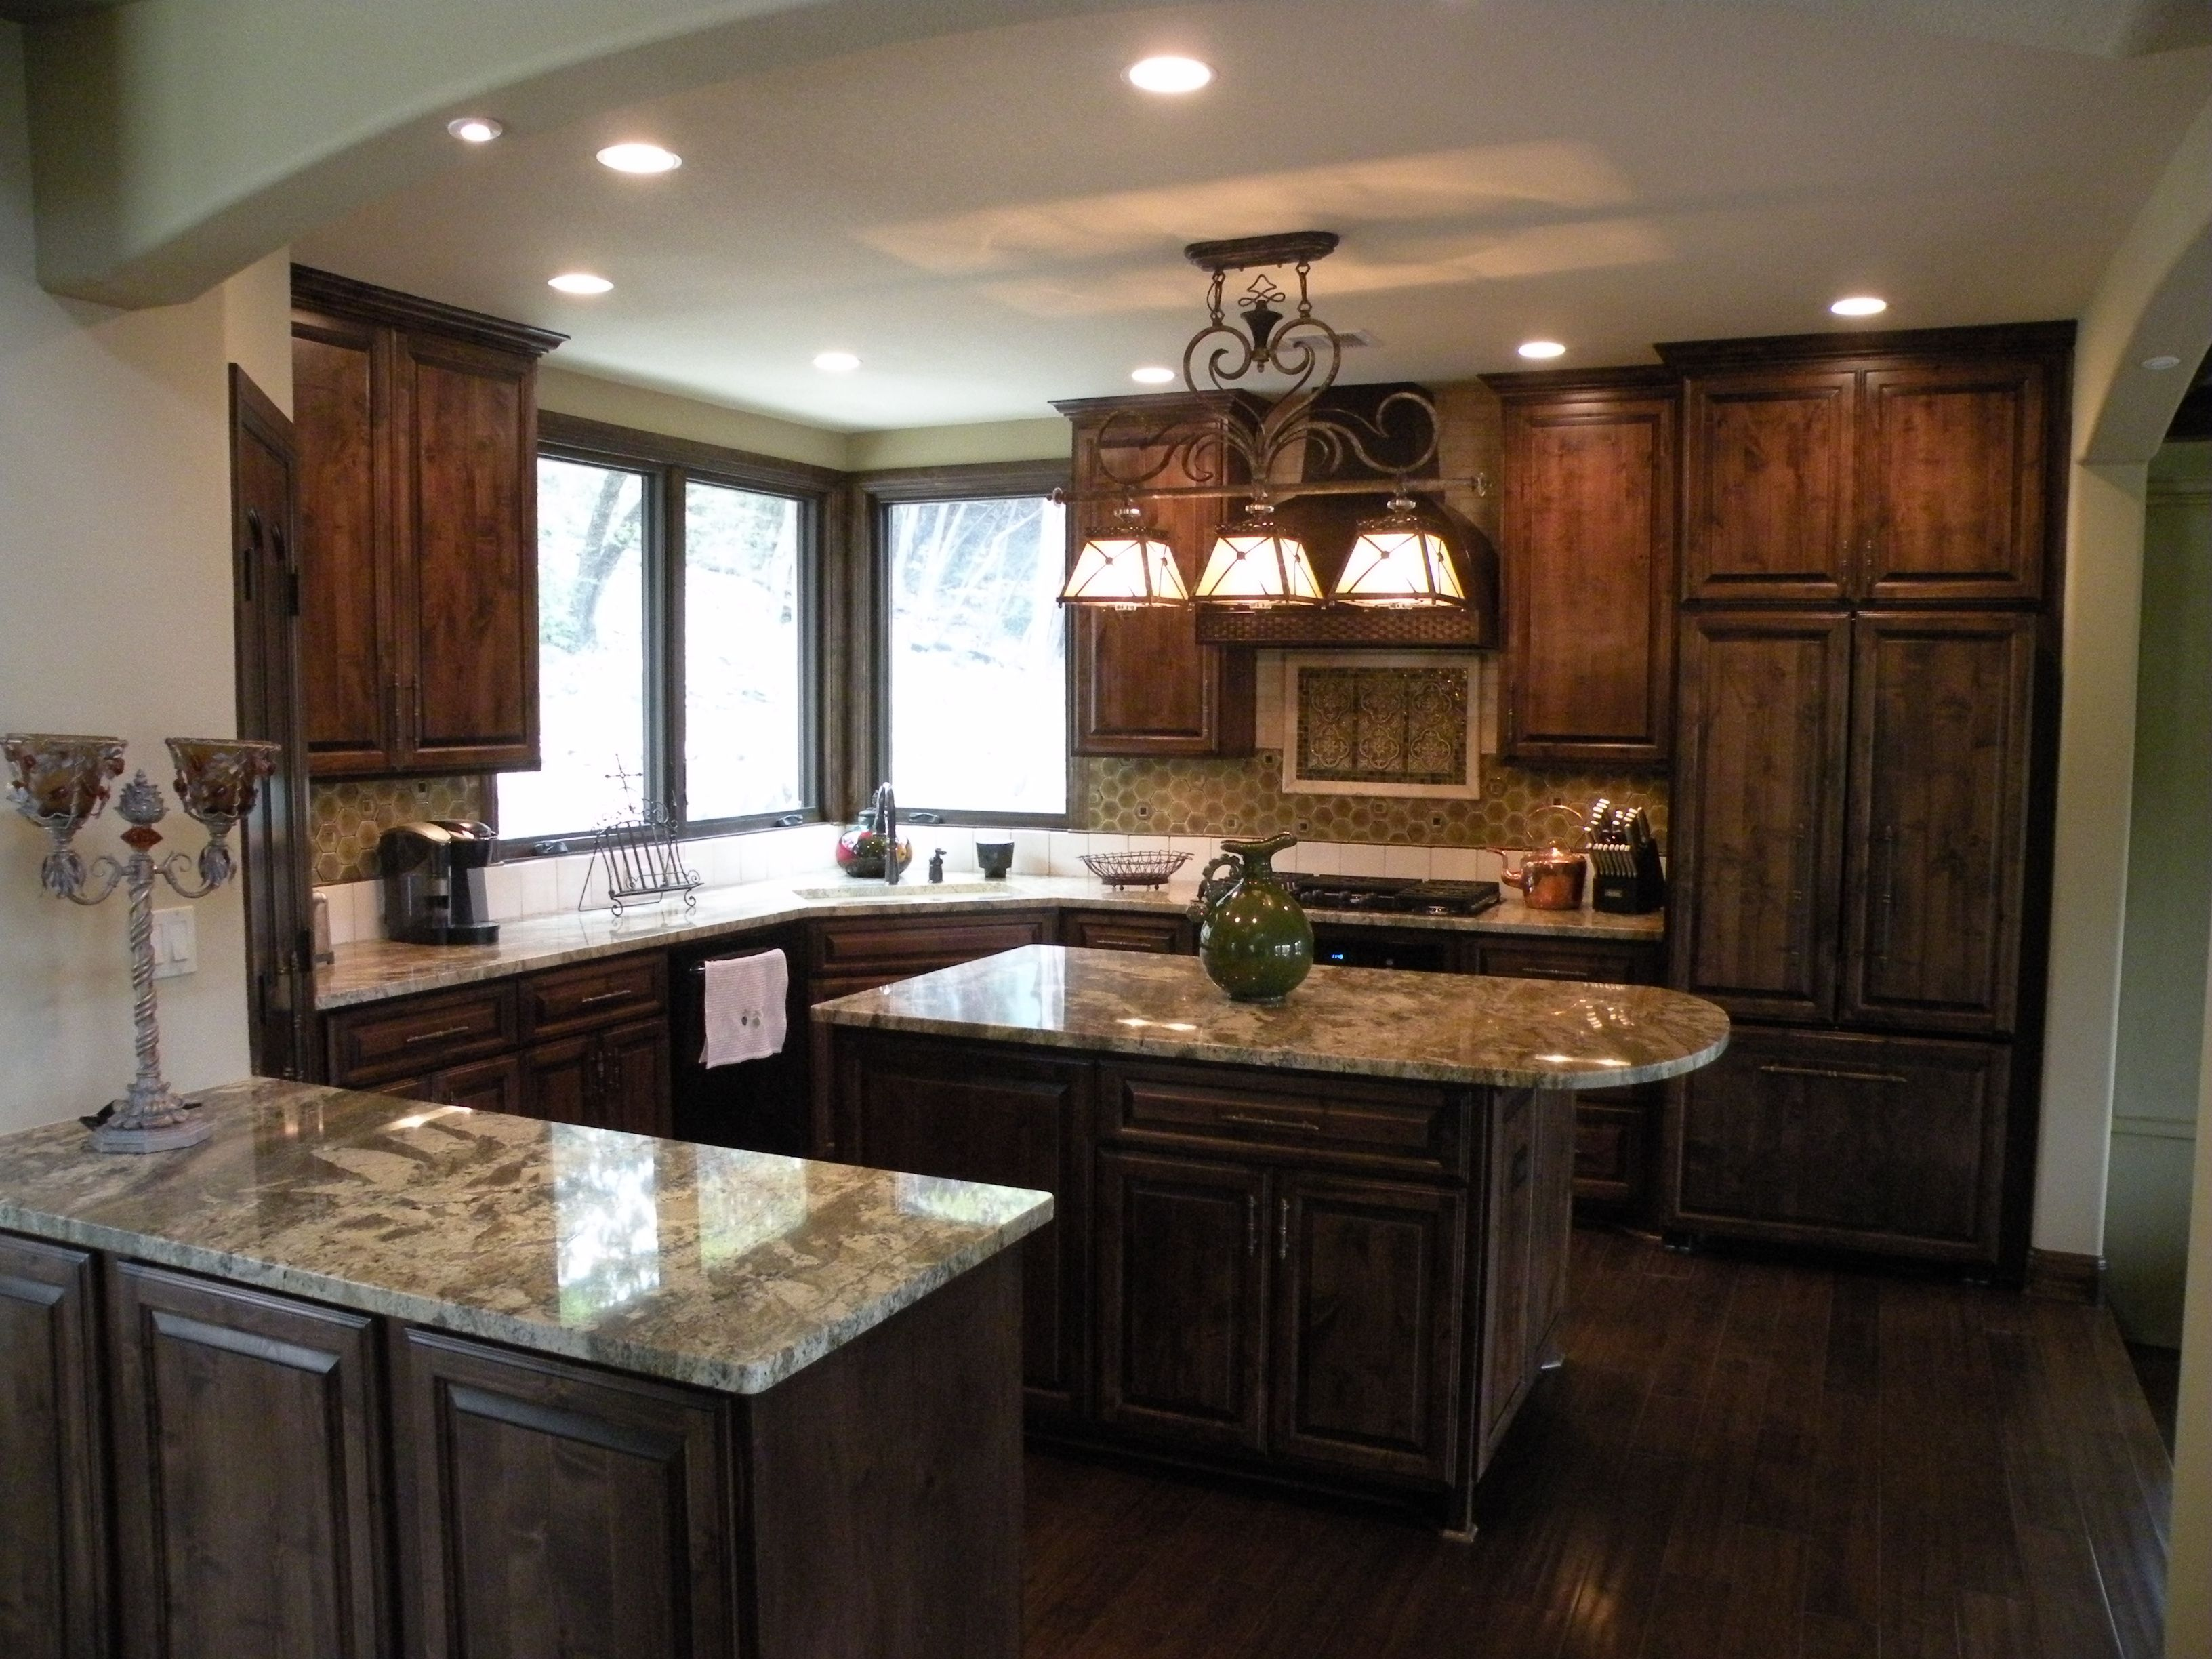 Very Comfortable Kitchen Layout Cabinets Are Knotty Alder Stained Dark Mahogany Luxury Kitchen Cabinets Stained Kitchen Cabinets Grey Painted Kitchen